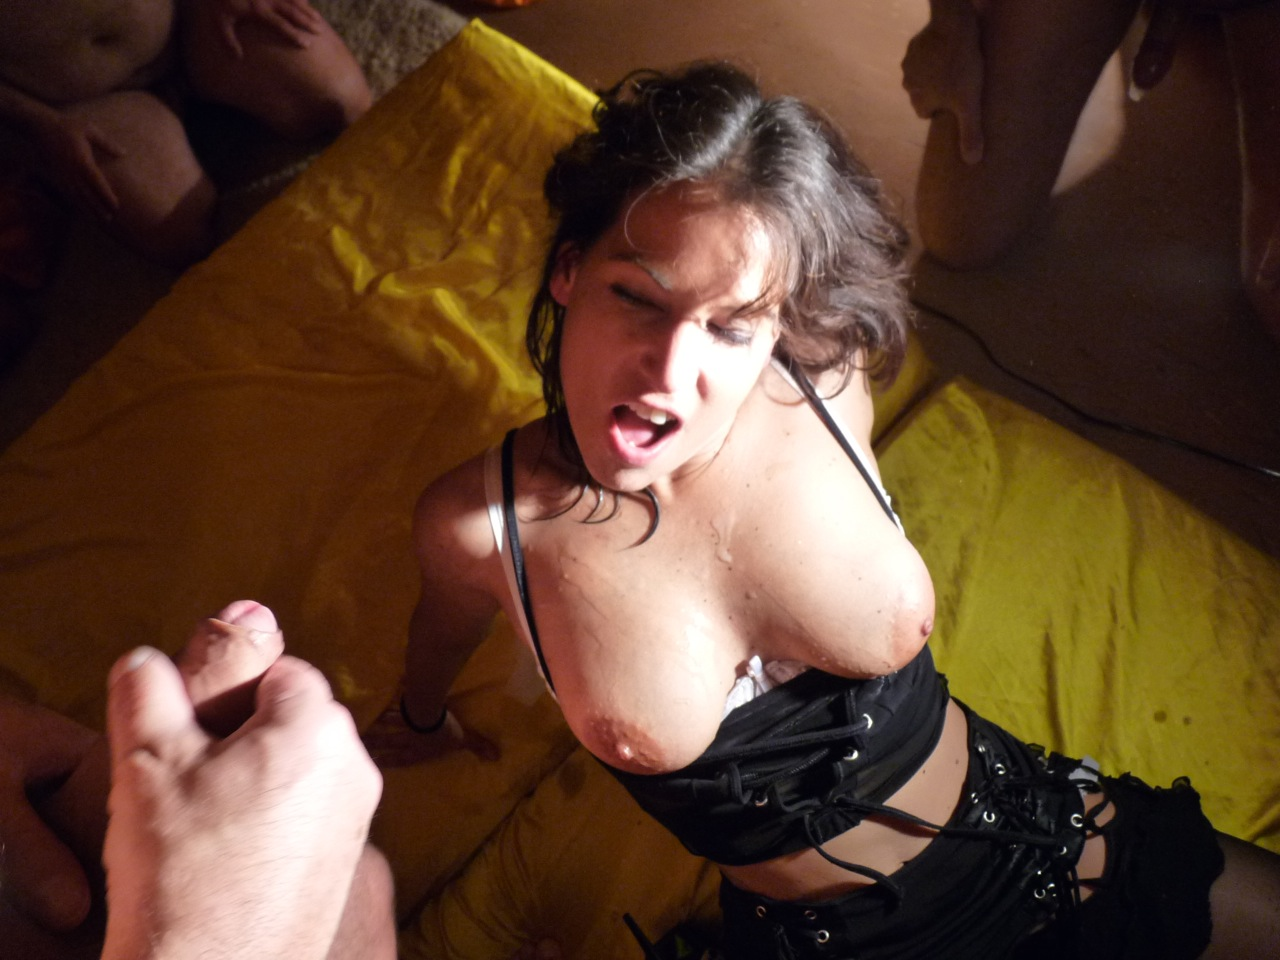 Amateur gangbang in the underground sex club 8